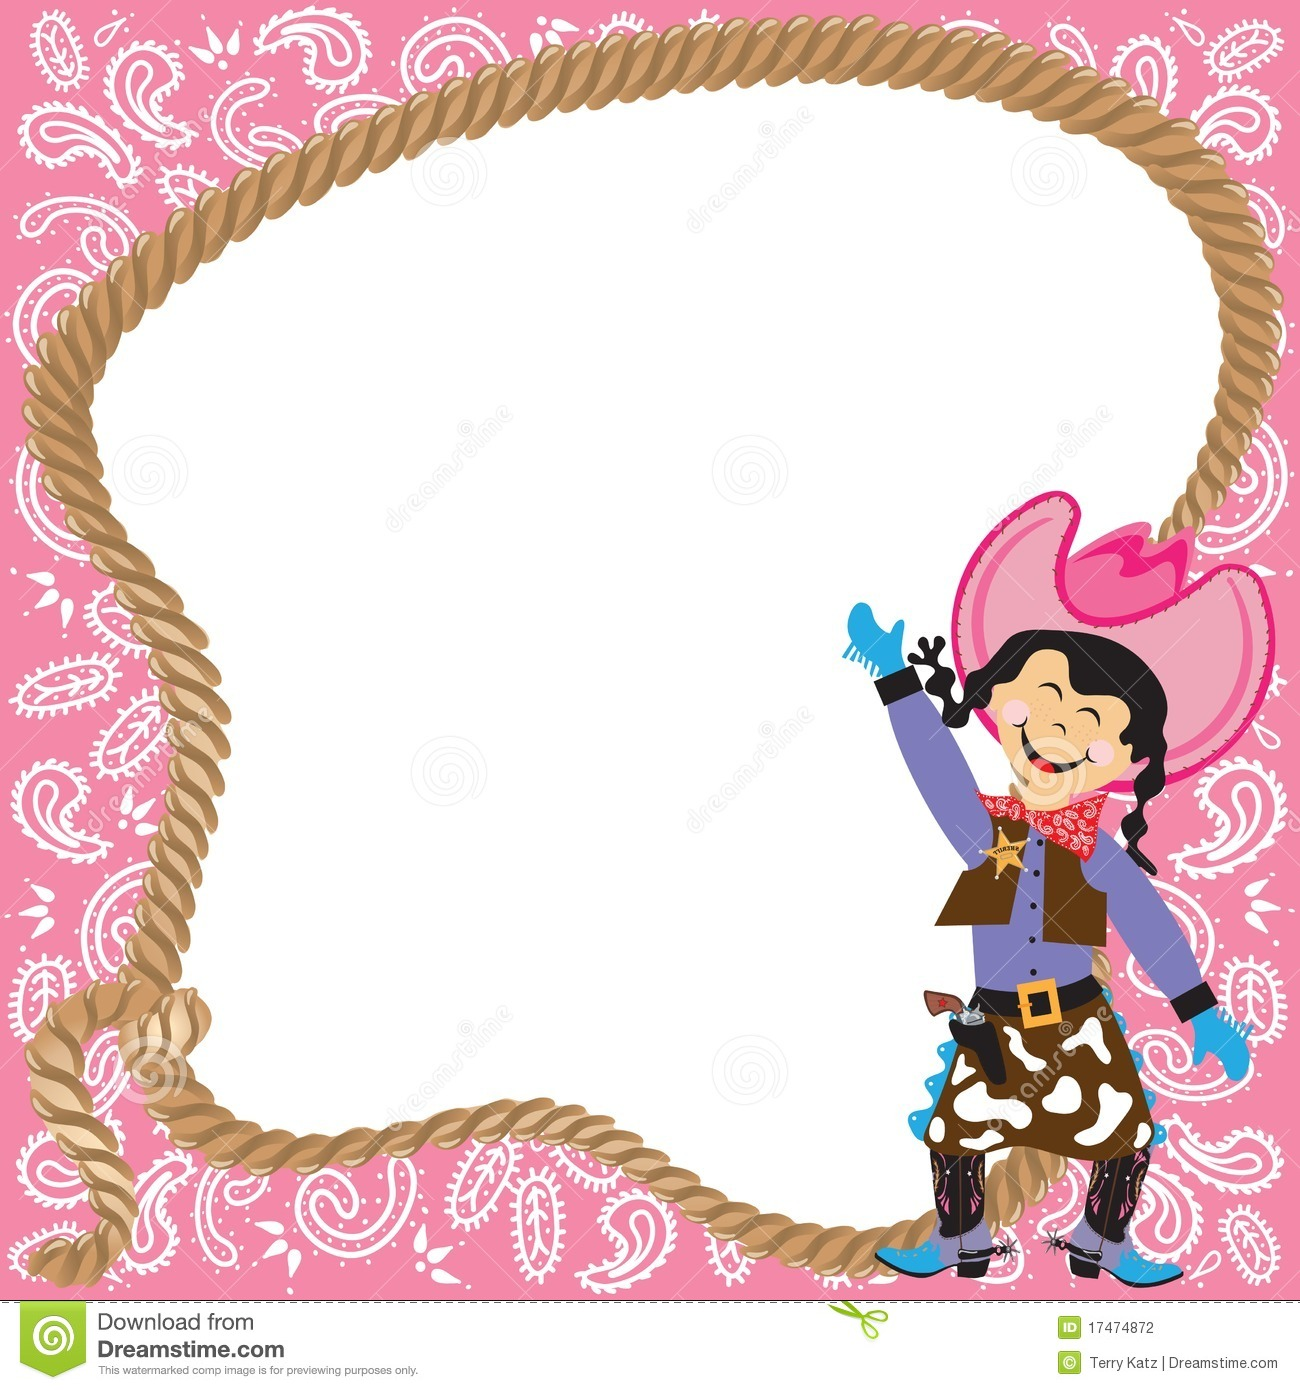 Cute Cowgirl Birthday Party Invitation Stock Vector - Illustration ...